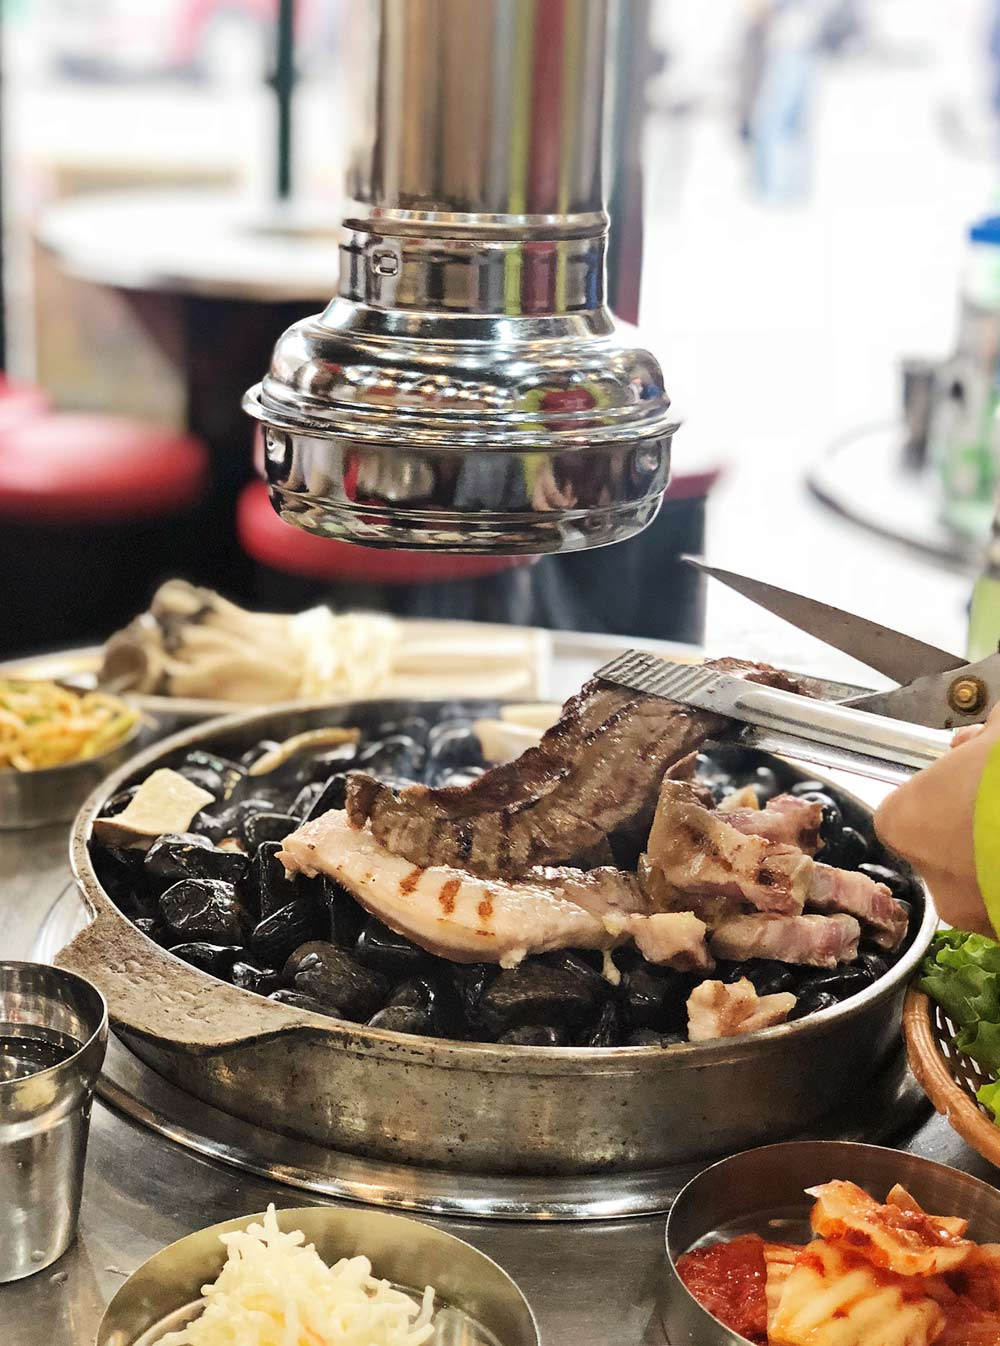 Piggy Bank Stone Grill Barbecue -Why Seoul is a Perfect City to go for a Girl's Trip